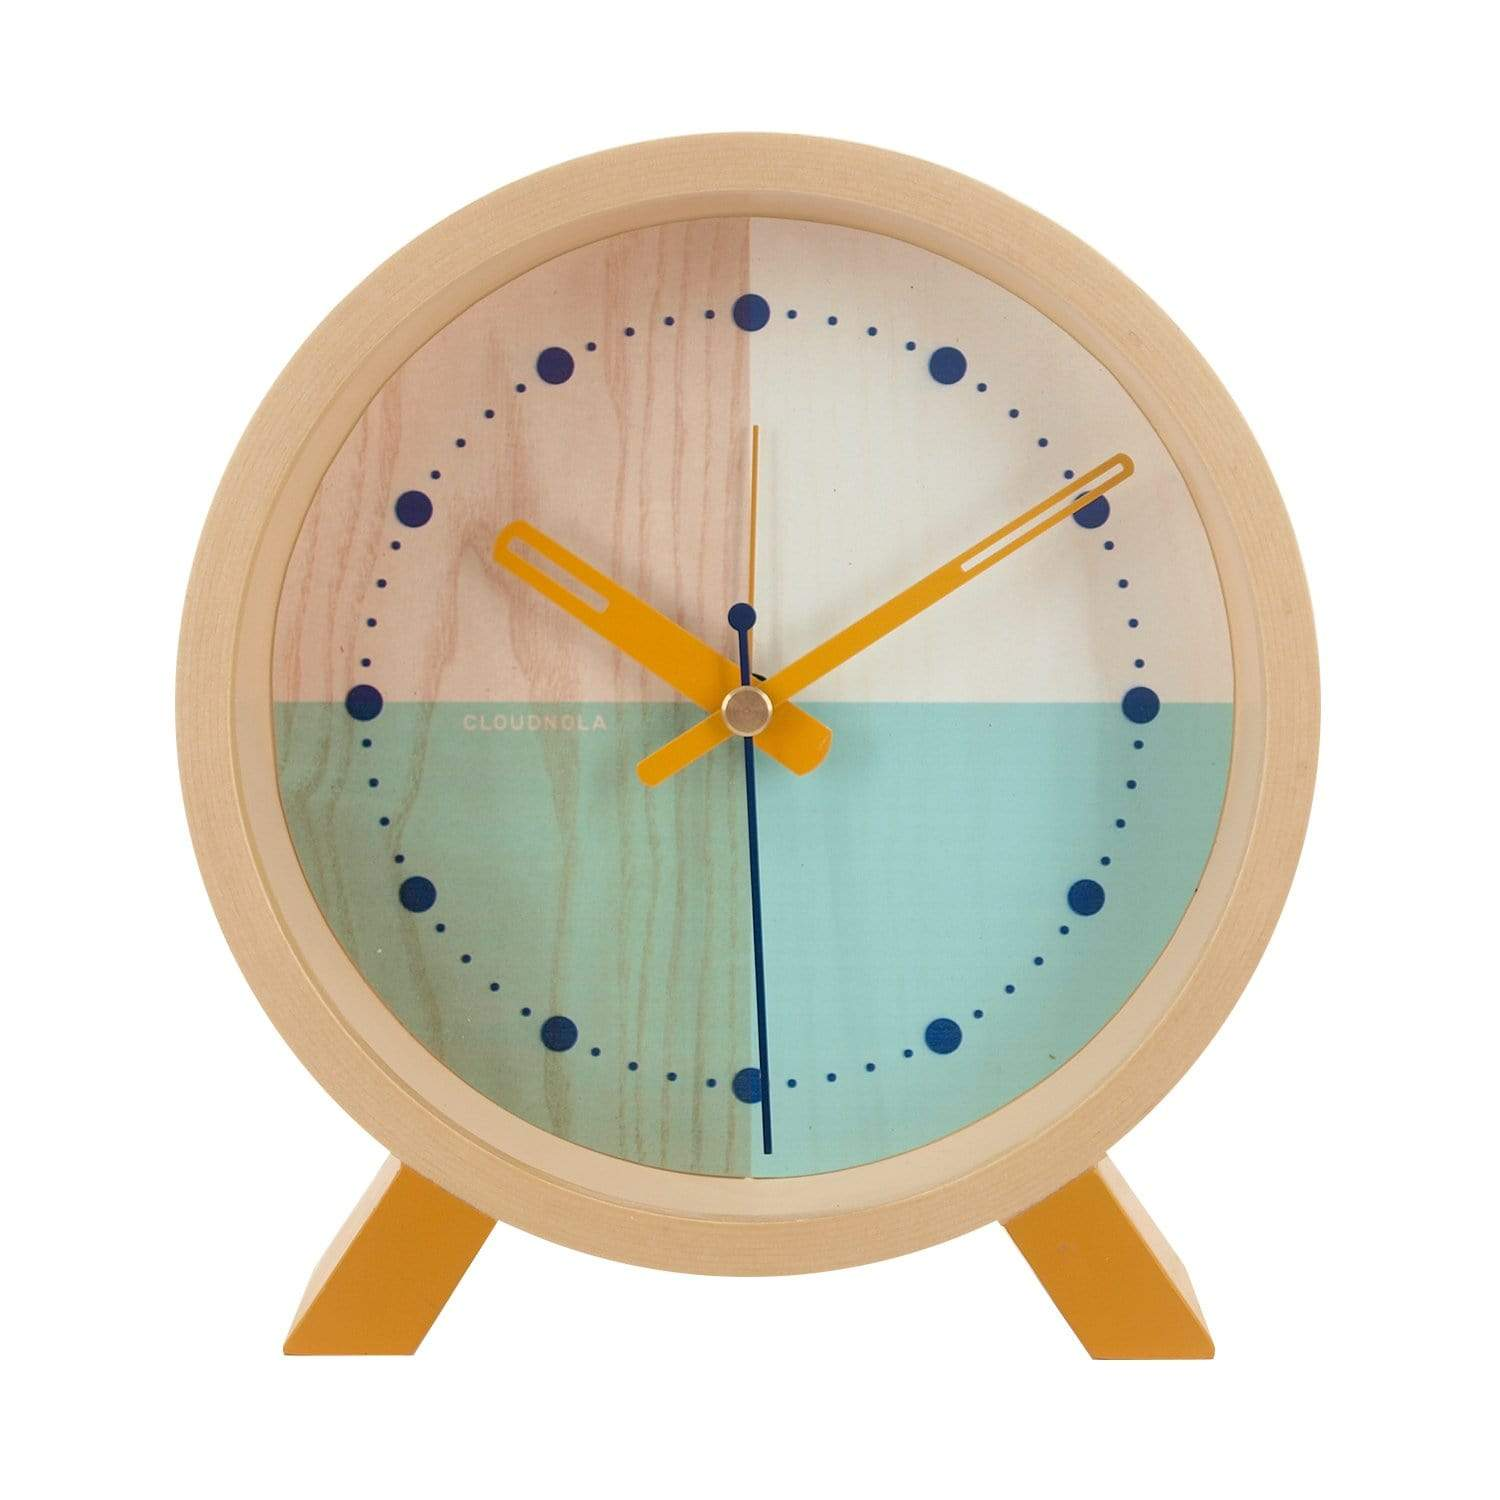 cloudnola Desk Clock Flor Turquoise Desk Clock